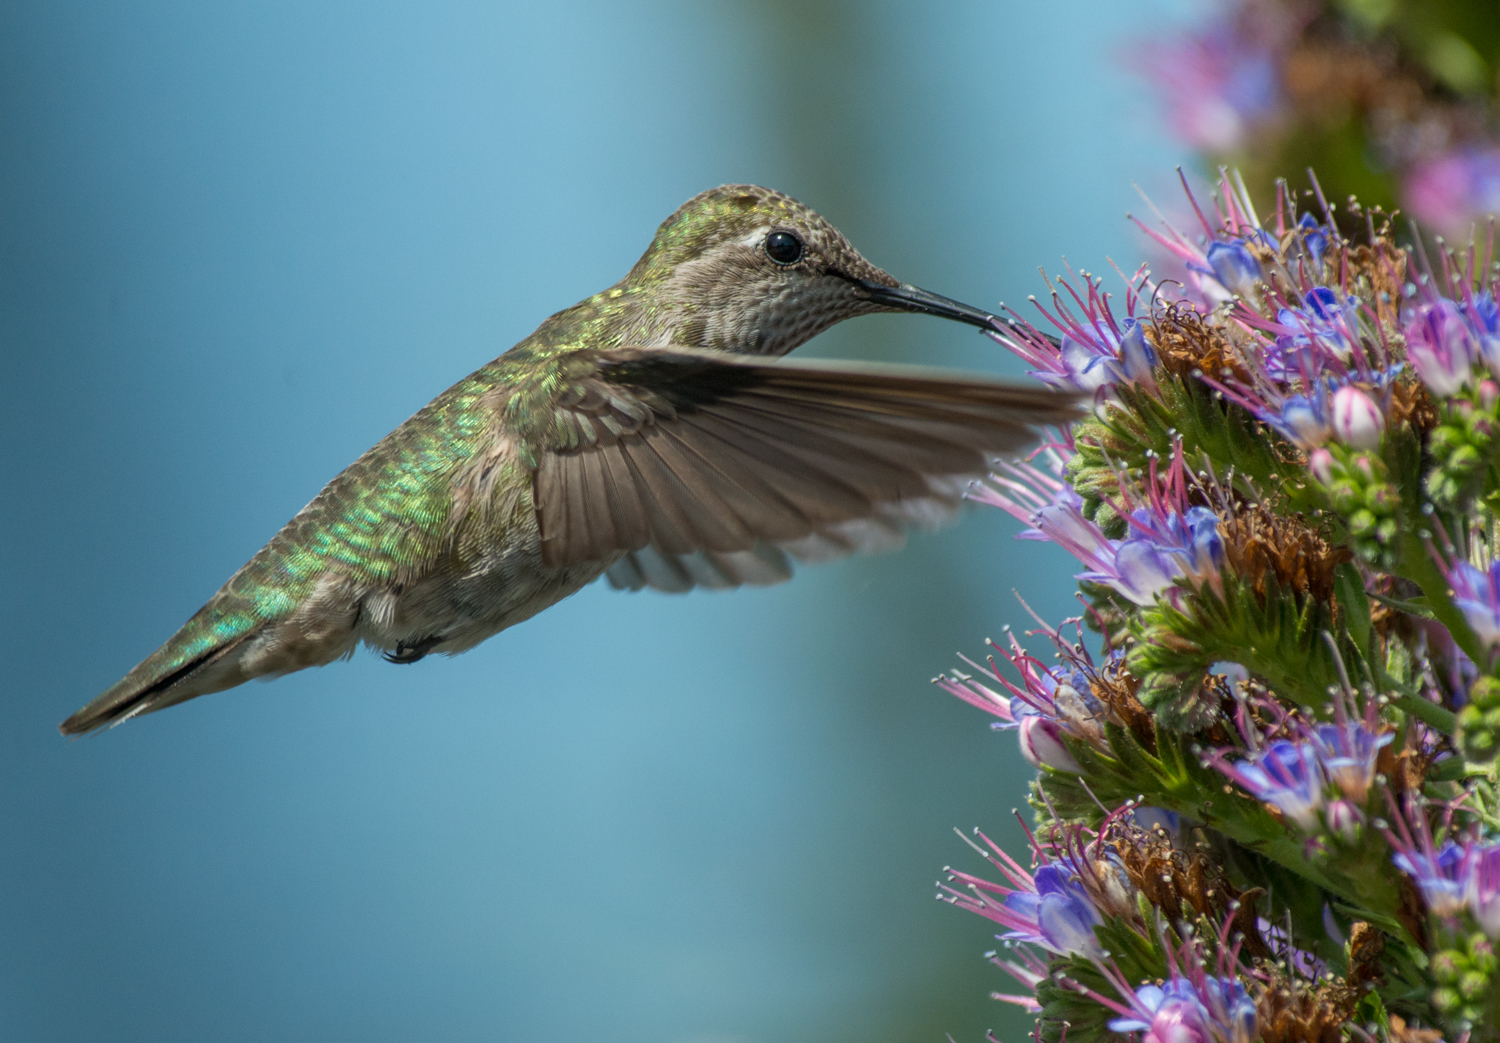 Photo of the Week:   Anna's hummingbird  (Calypte anna) in flight   EQ: D800 f/2.8 300mm with 2.0x TC Taken: 3-22-13 12:35  Setting: 600mm, f/8, 1/1600s, ISO720  Condition: Sunny but in some shade